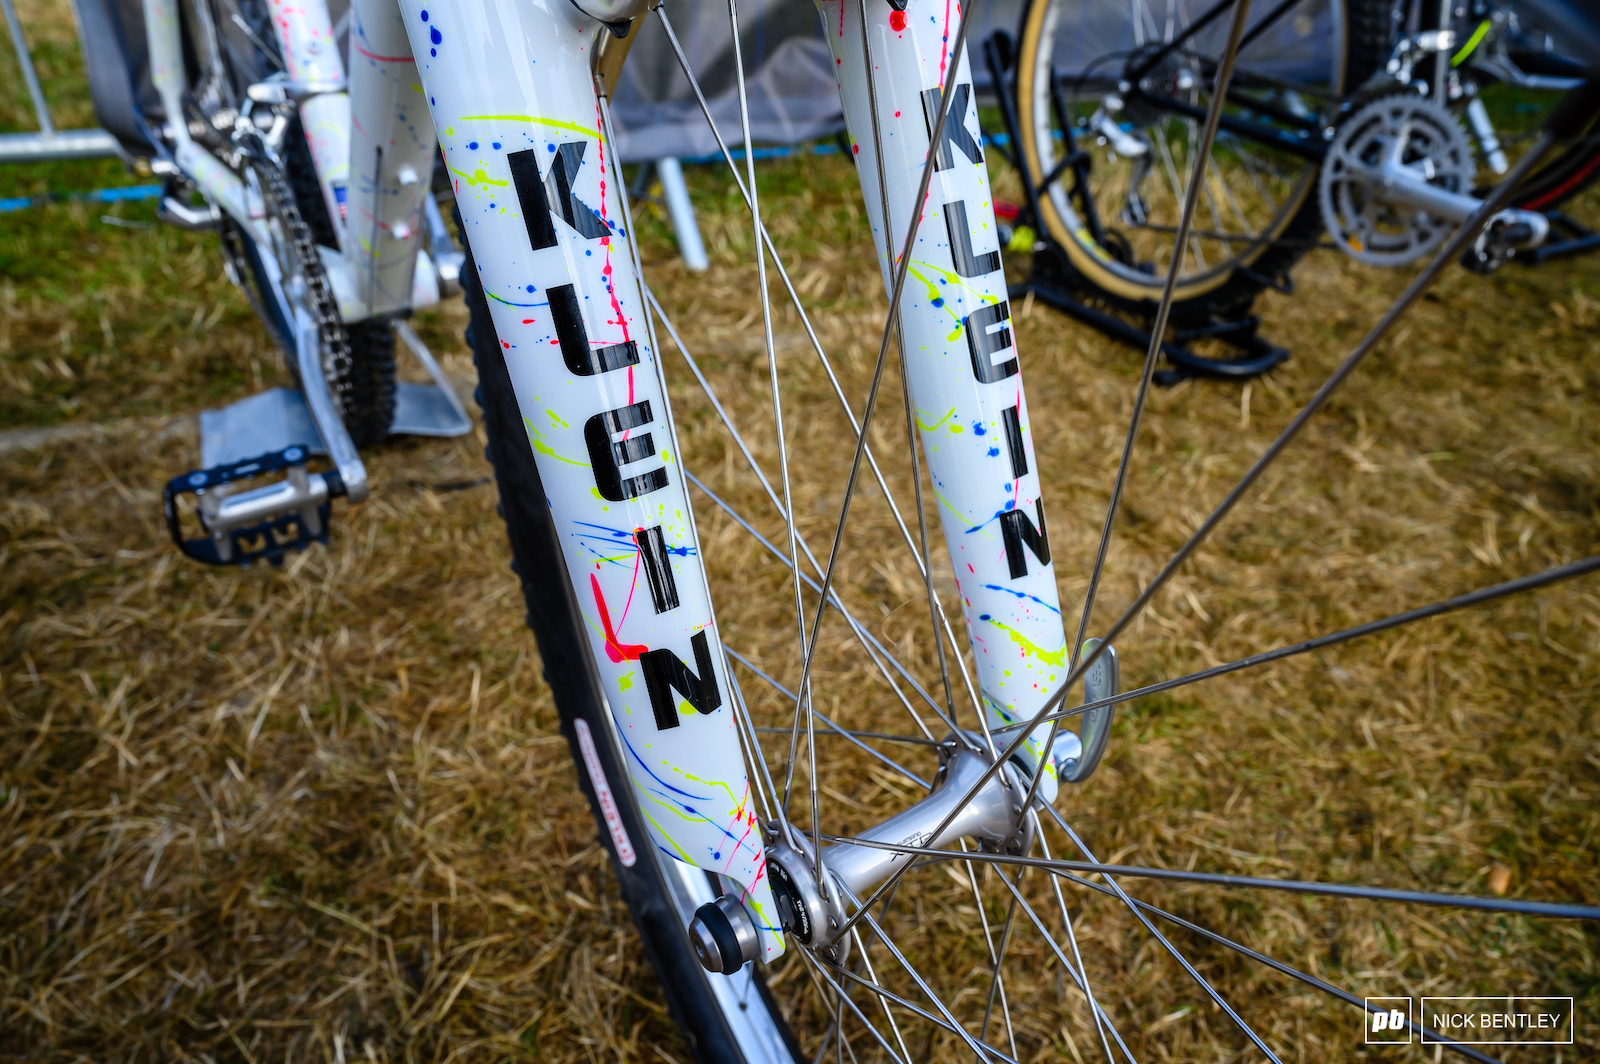 Fully rigid forks for this Klein